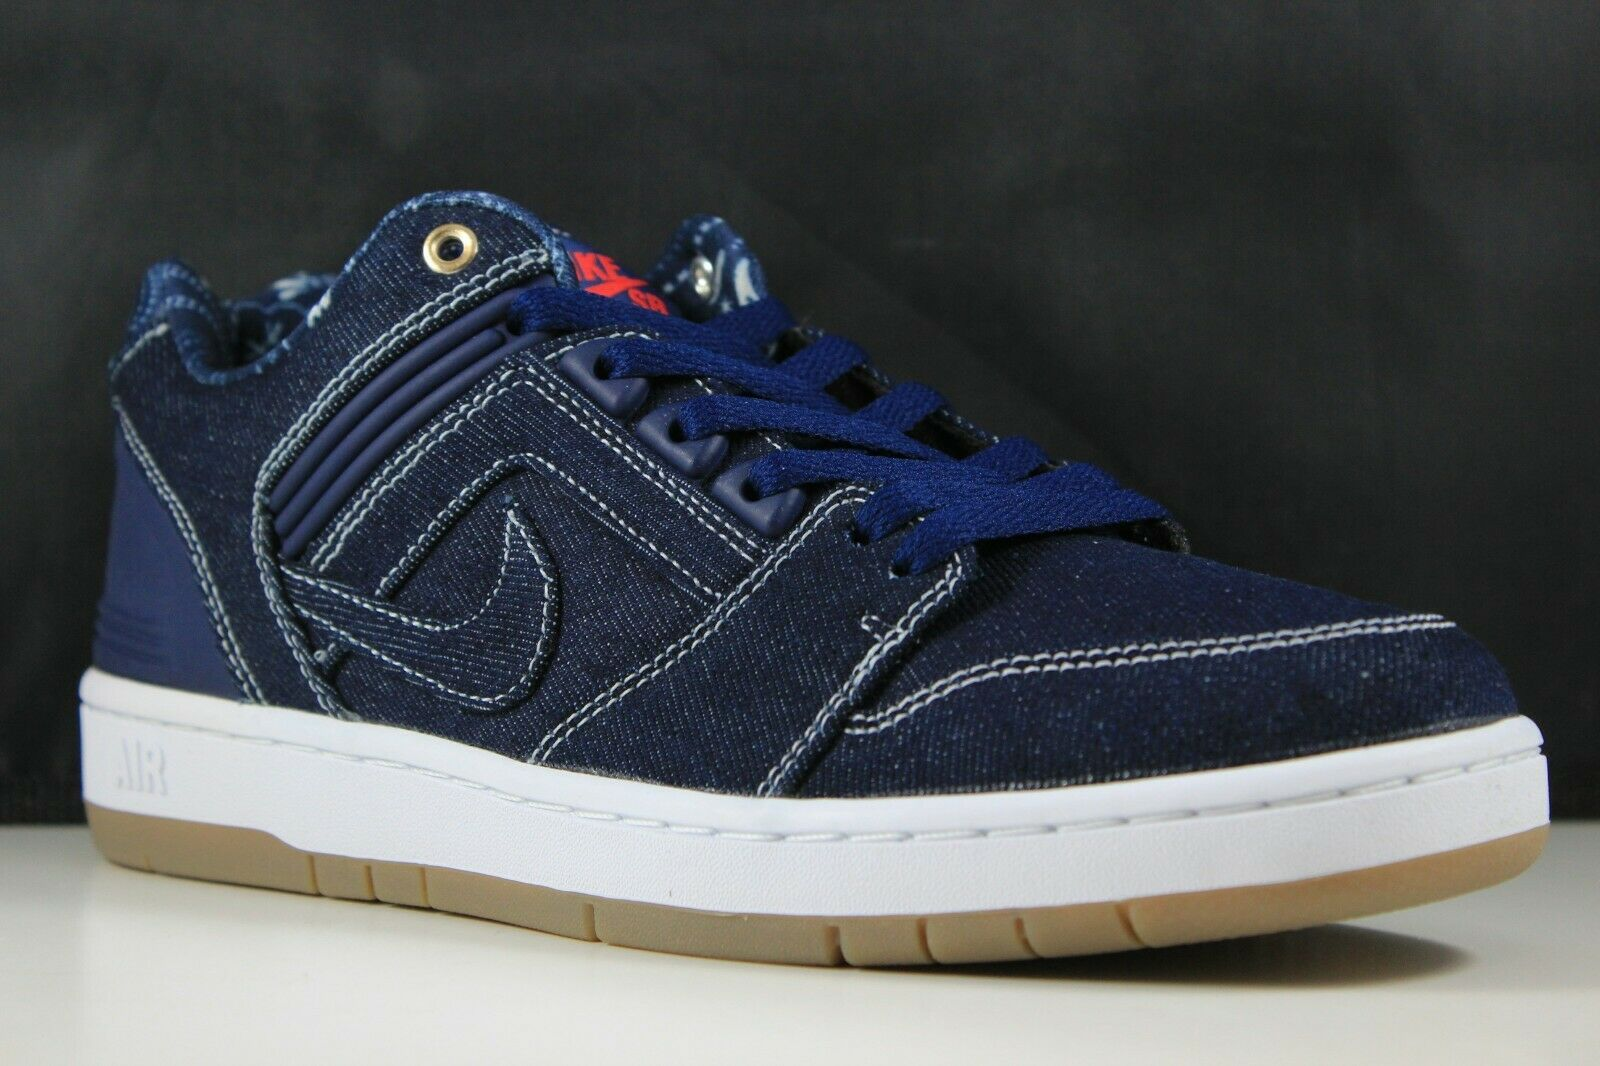 Nike sb Air Force II Low Qs Talla 11 para hombre Binario Azul blancoo AO0298-441